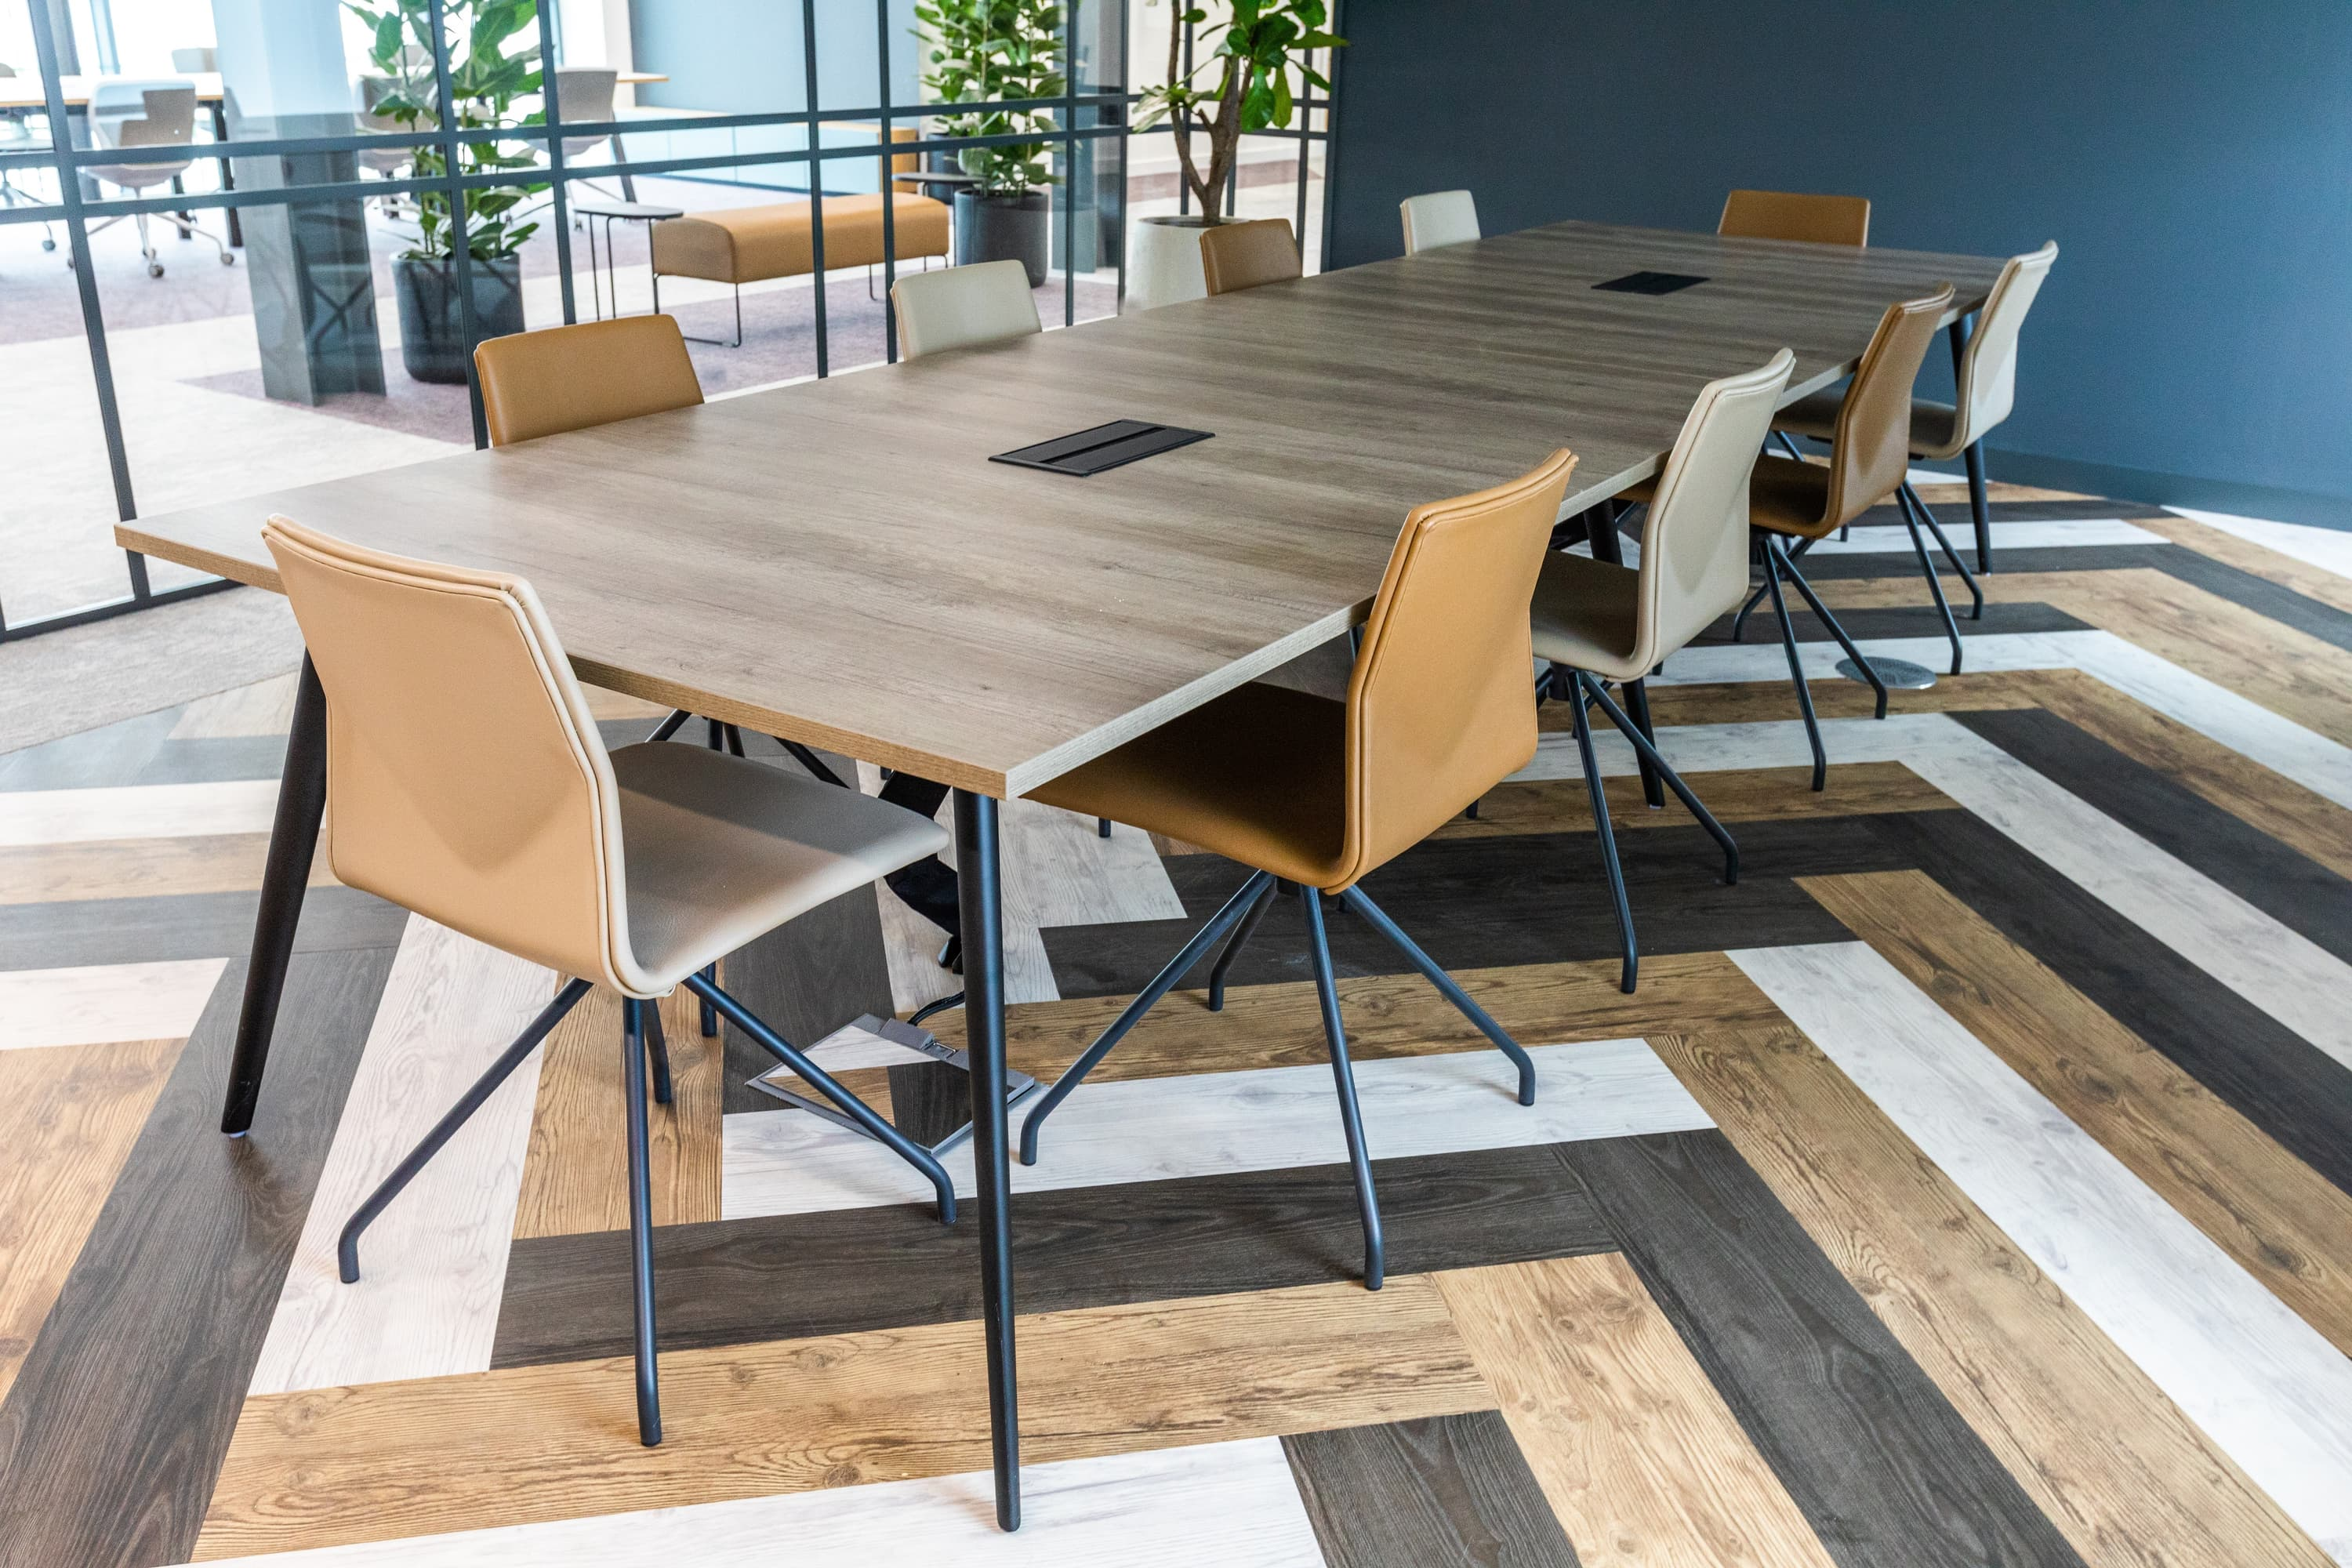 Meeting room with caramel chairs and patterned wooden floor